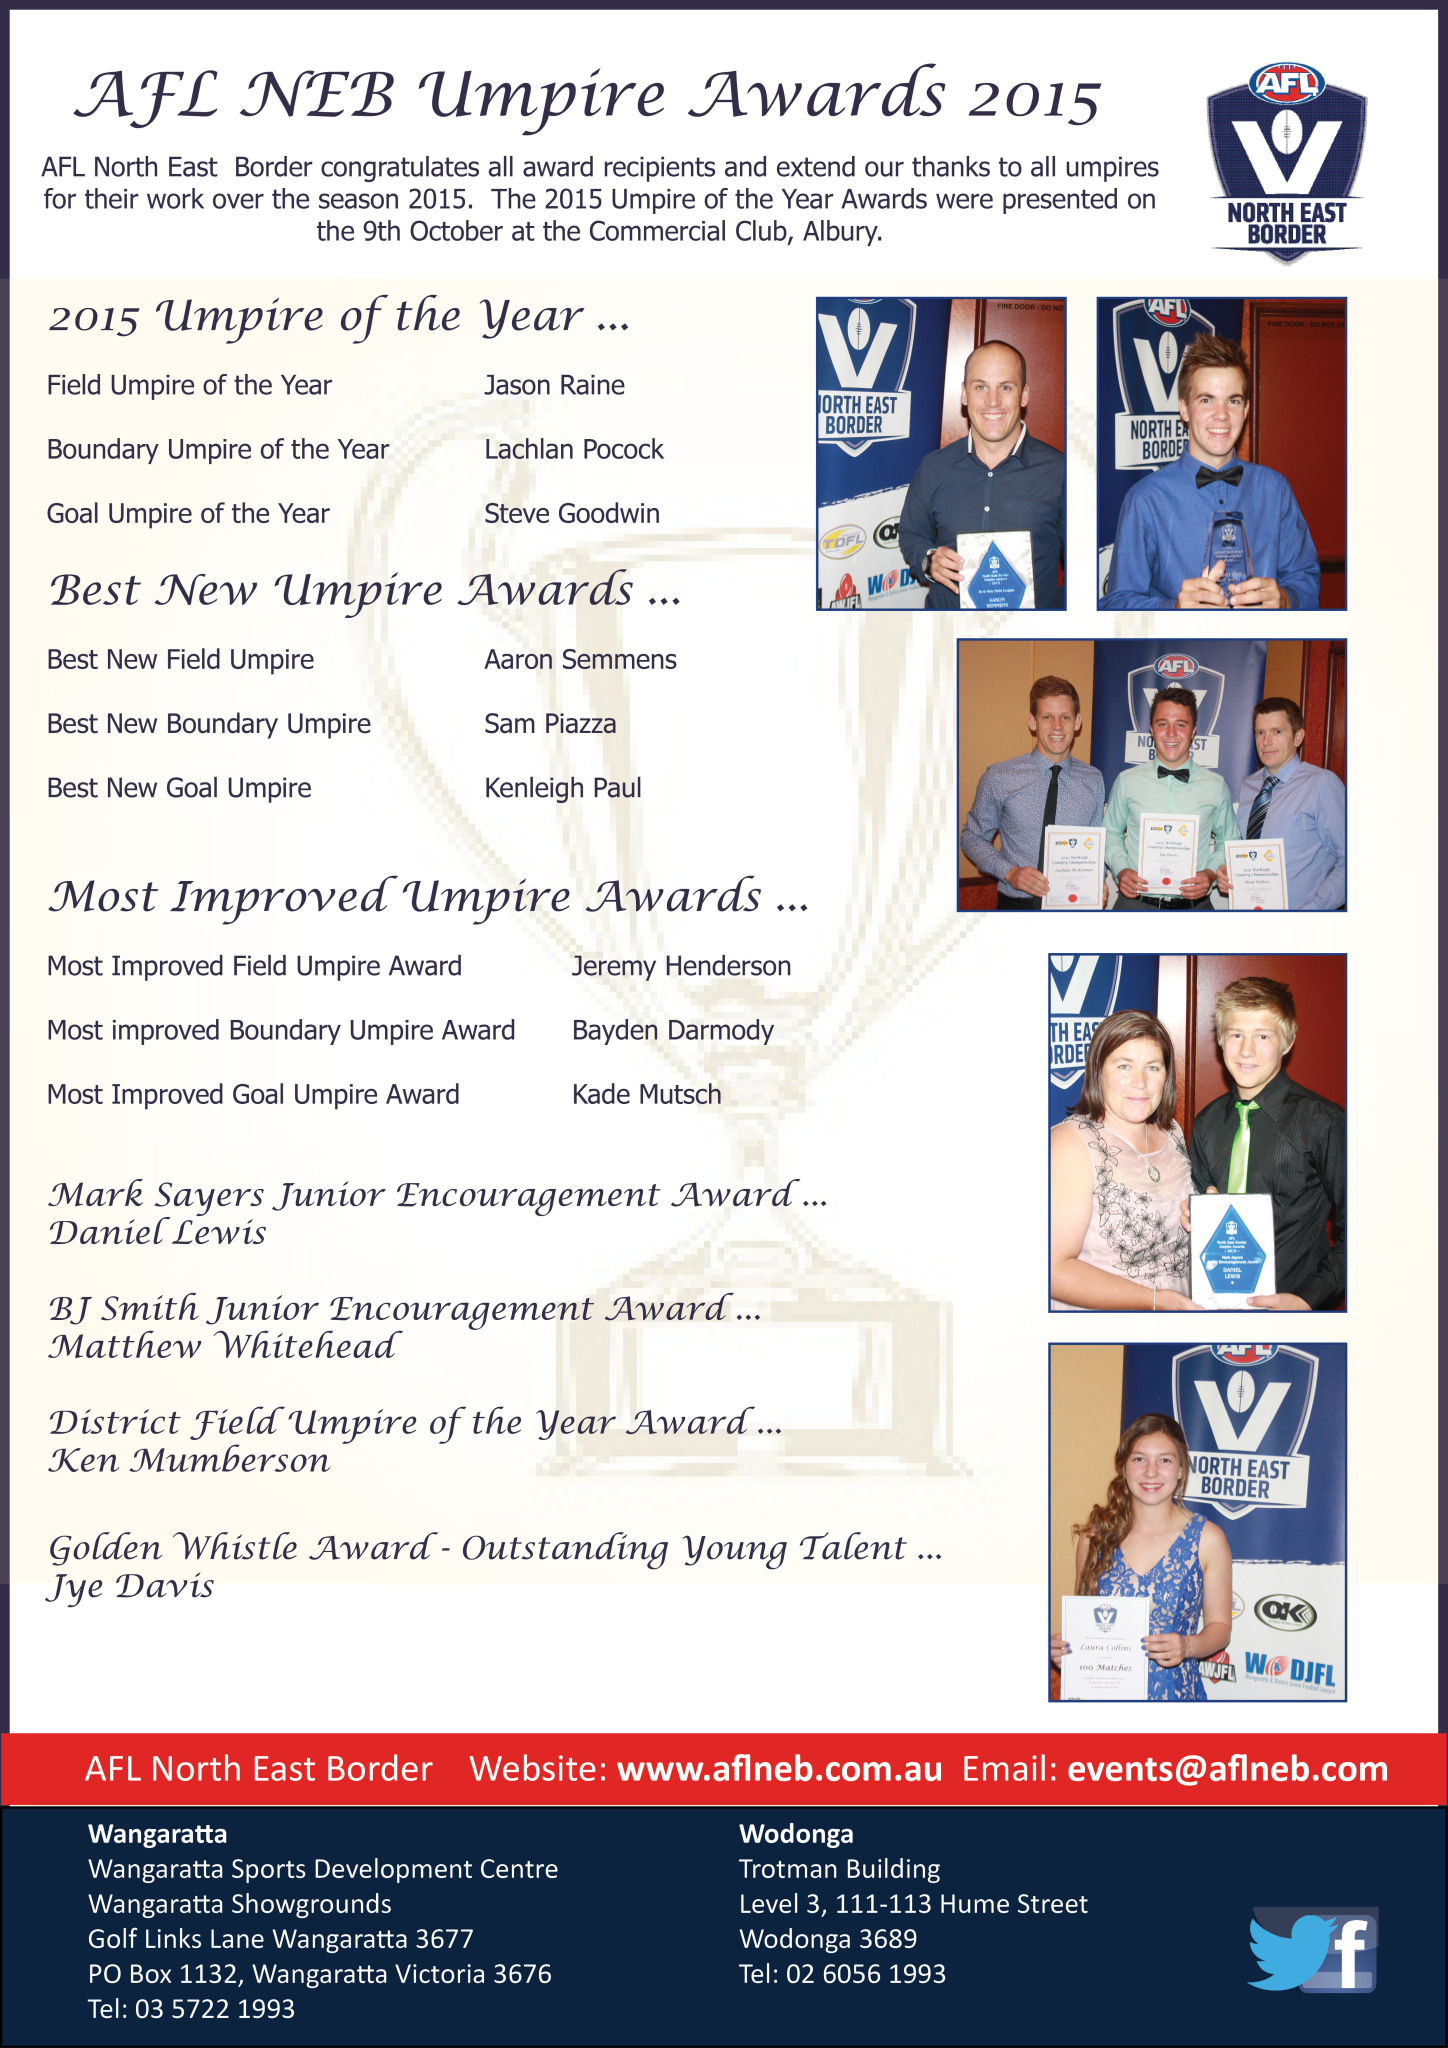 afl north east border congratulates all award recipients and extend our thanks to all umpires for their work over the season 2015